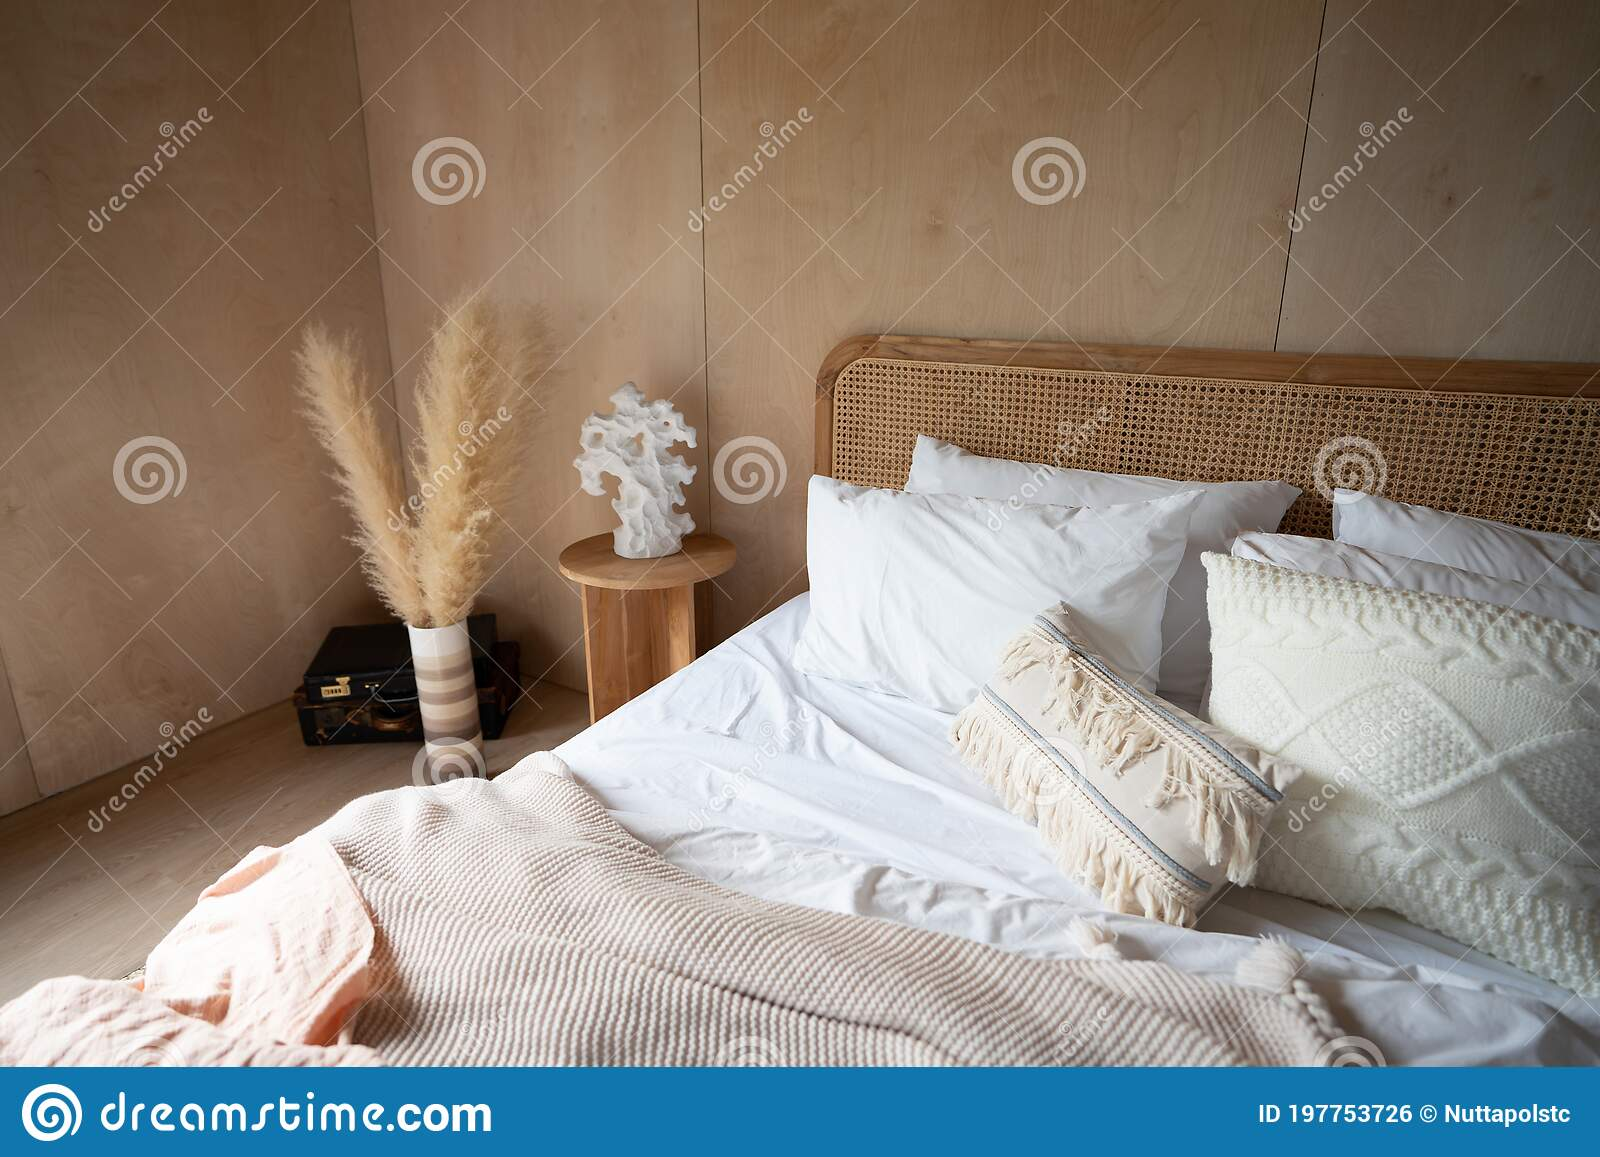 stylish bedroom corner with rattan headboard and bed with soft pillows setting with white pillows plywood wall on the background stock photo image of idea mirror 197753726